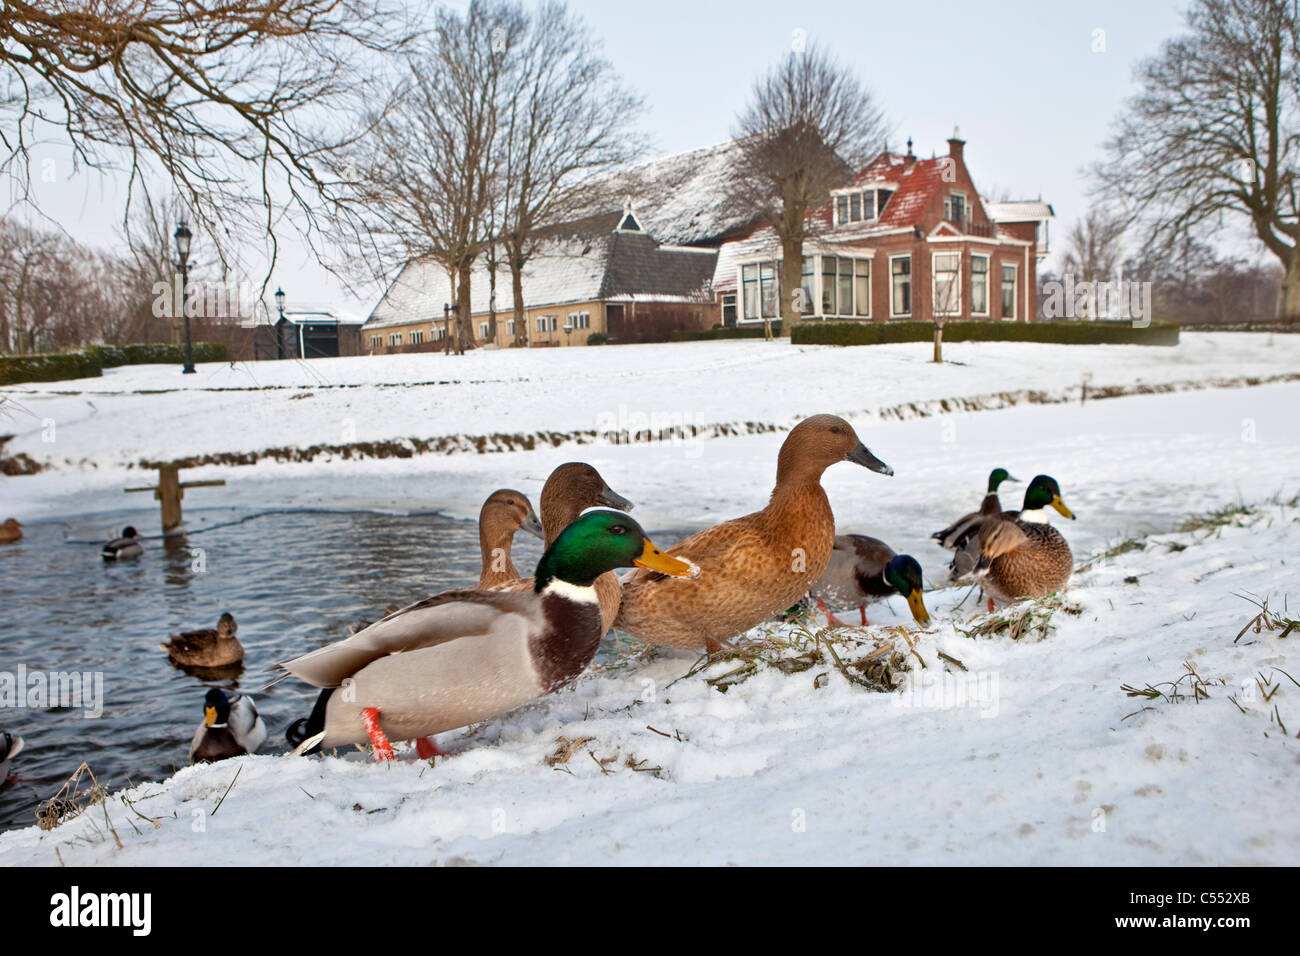 The Netherlands, Marrum, Ducks in ice-hole and on snow. Background: farm. - Stock Image